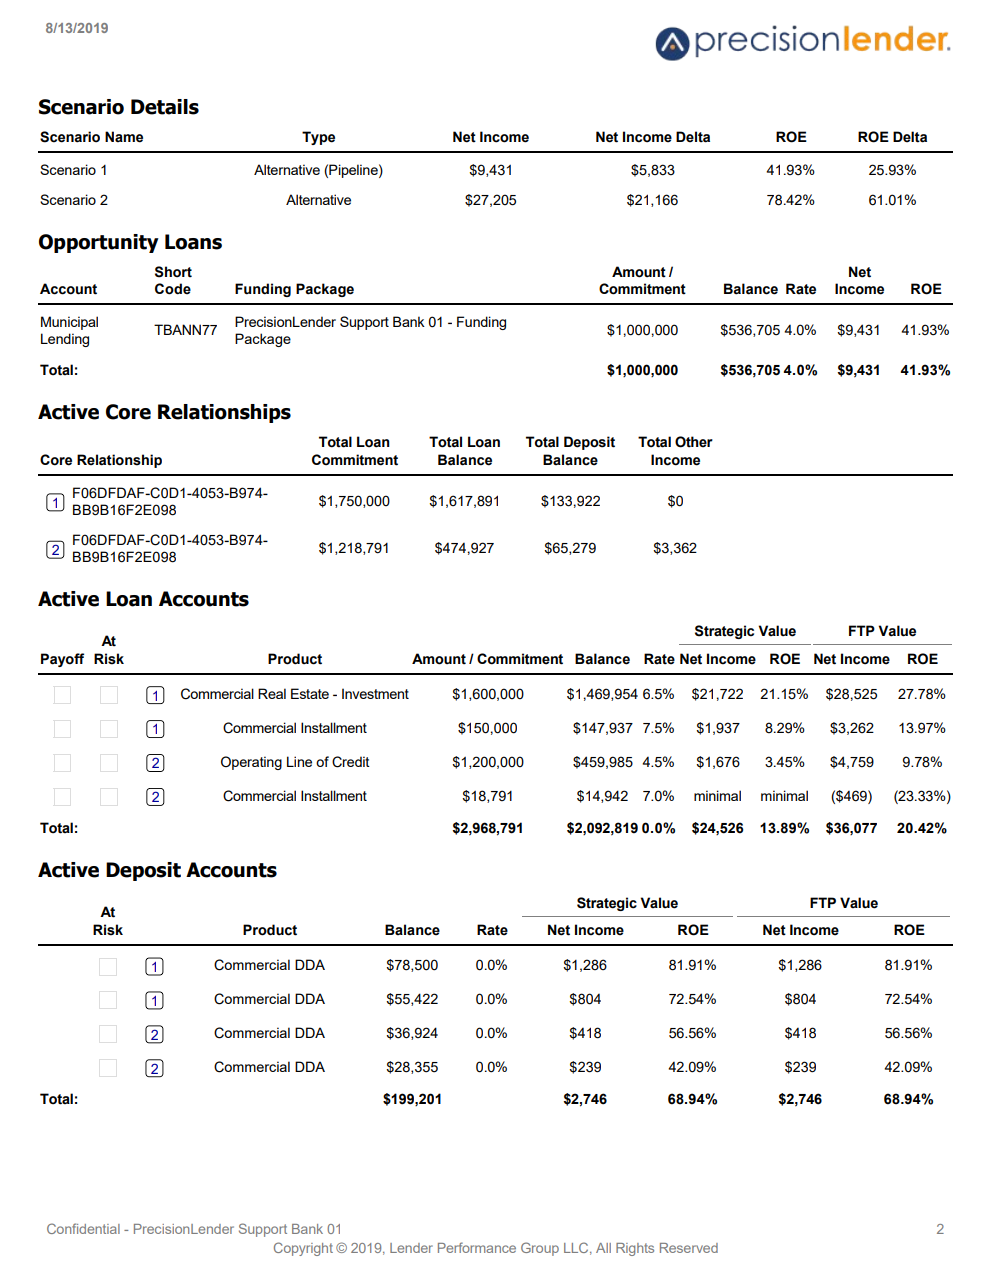 Shows page two of the executive summary relationship impact printout